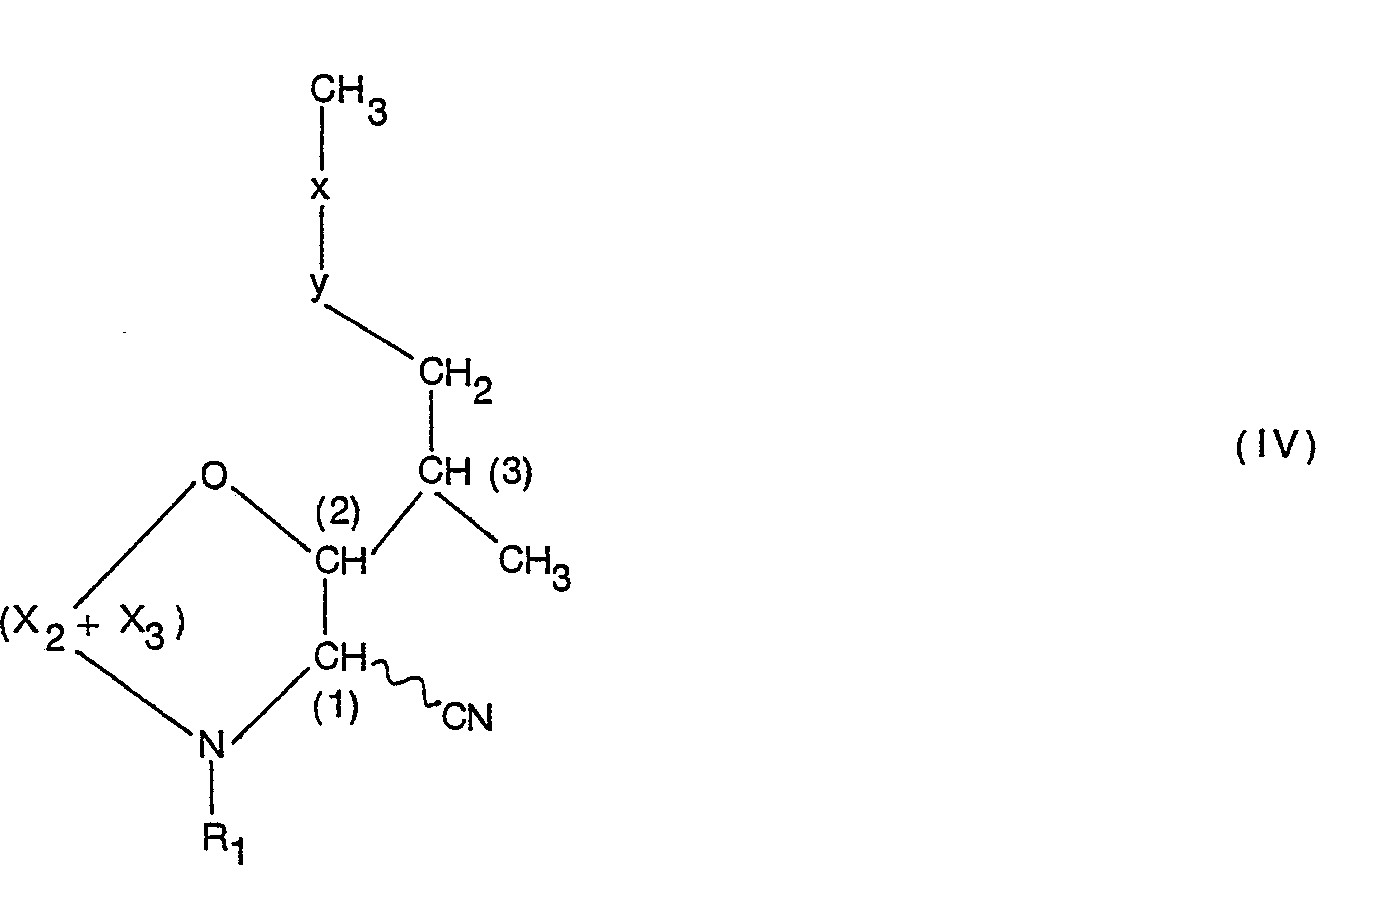 Ep0034567b1 A Method For The Total Synthesis Of Cyclosporins And Process Flow Diagram R Wherein 1 X Y Have Meanings Given Above 2 3 Represents Protecting Group As Defined Bridging N 0 Functions